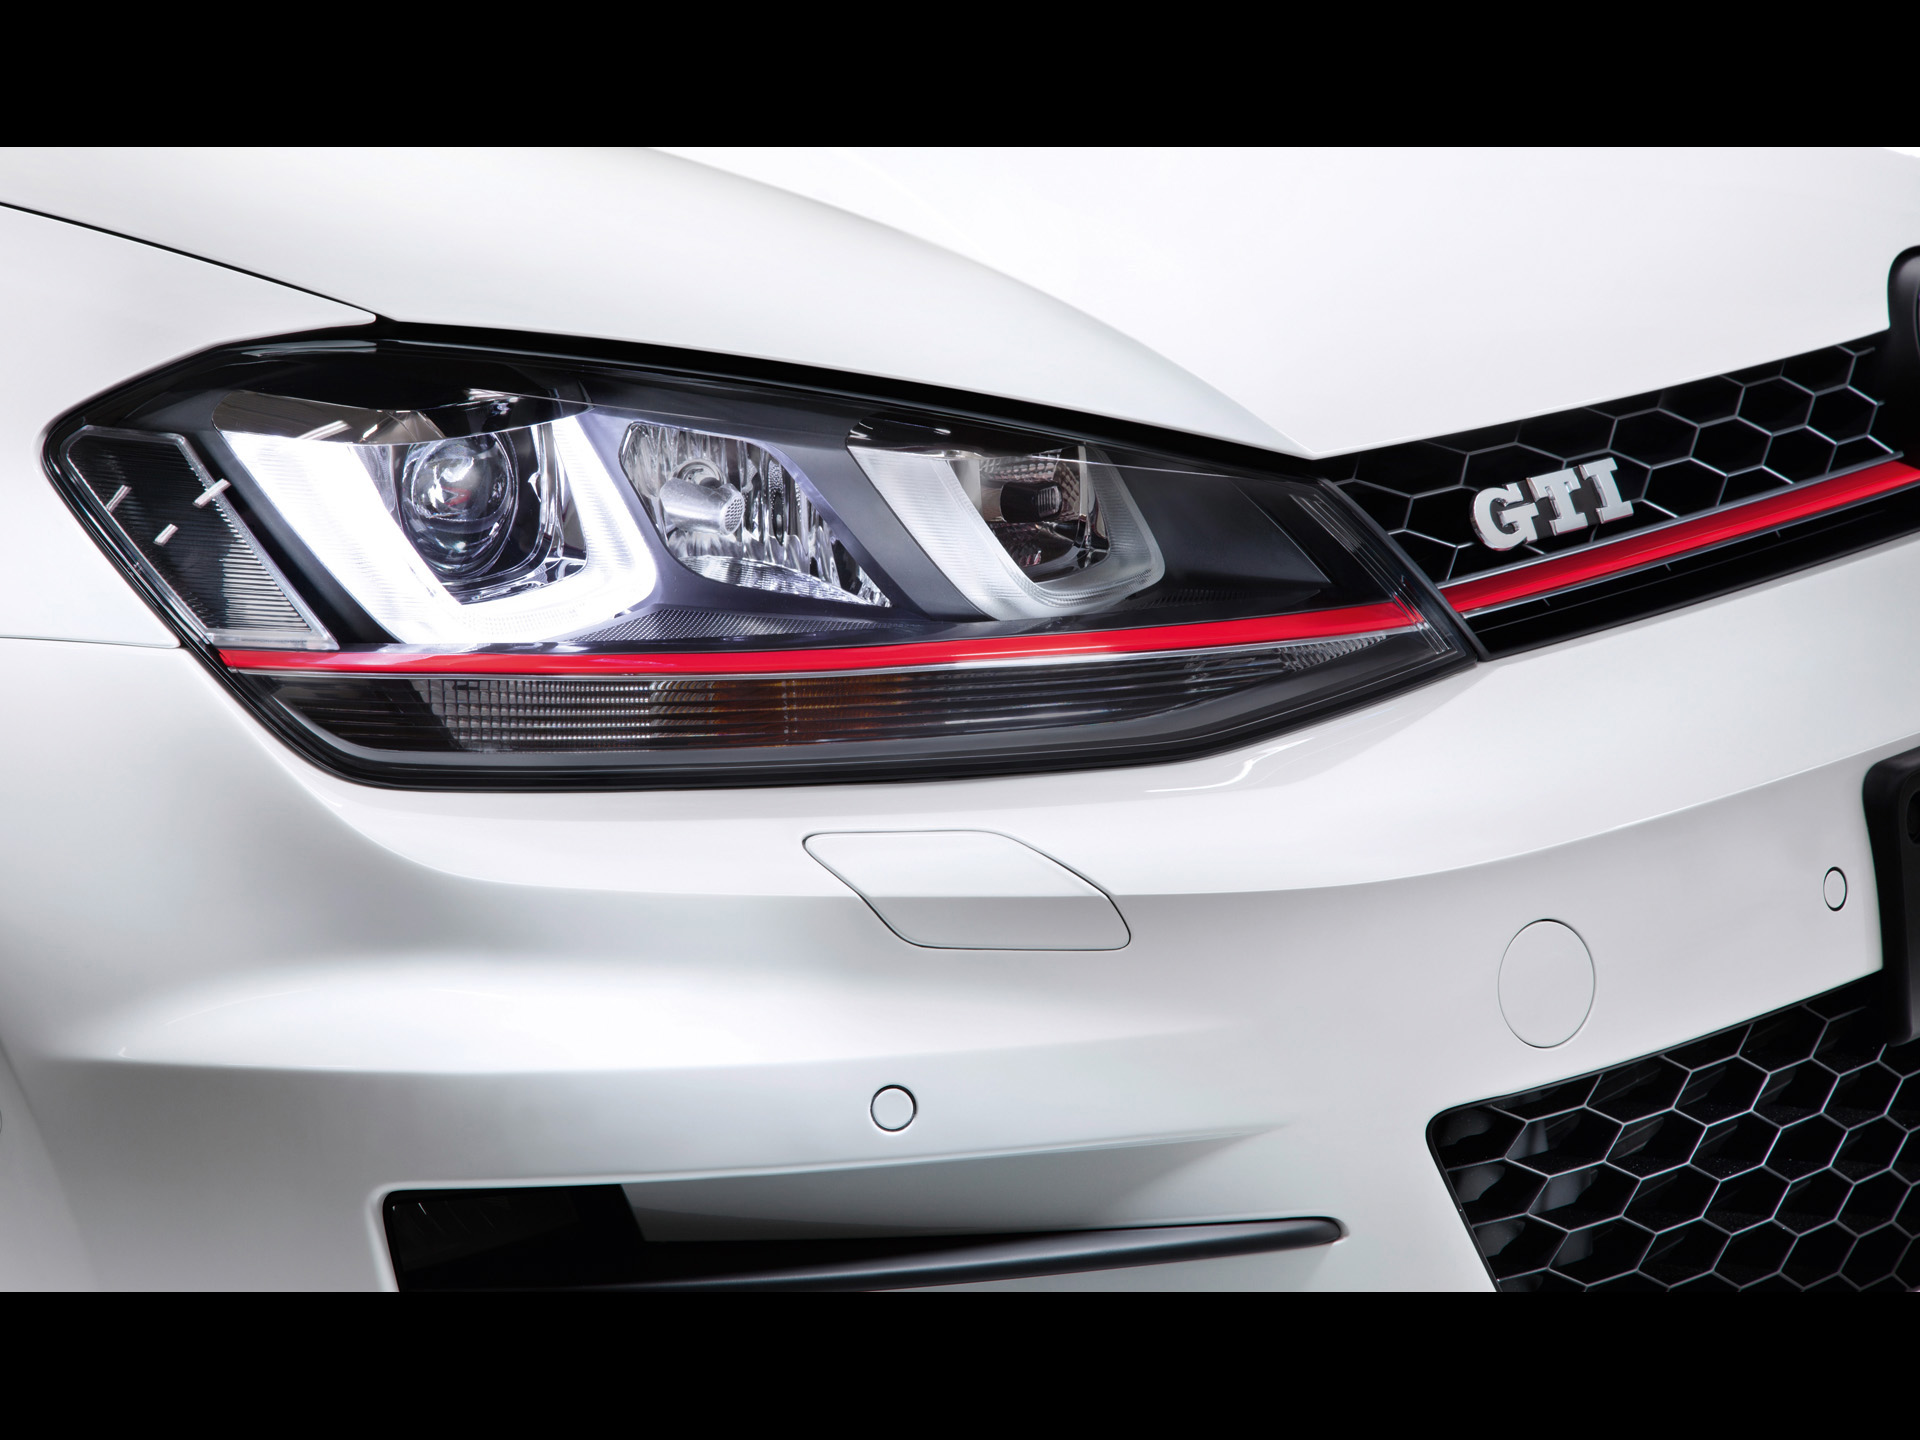 2012 volkswagen golf 7 gti konzept scheinwerfer. Black Bedroom Furniture Sets. Home Design Ideas